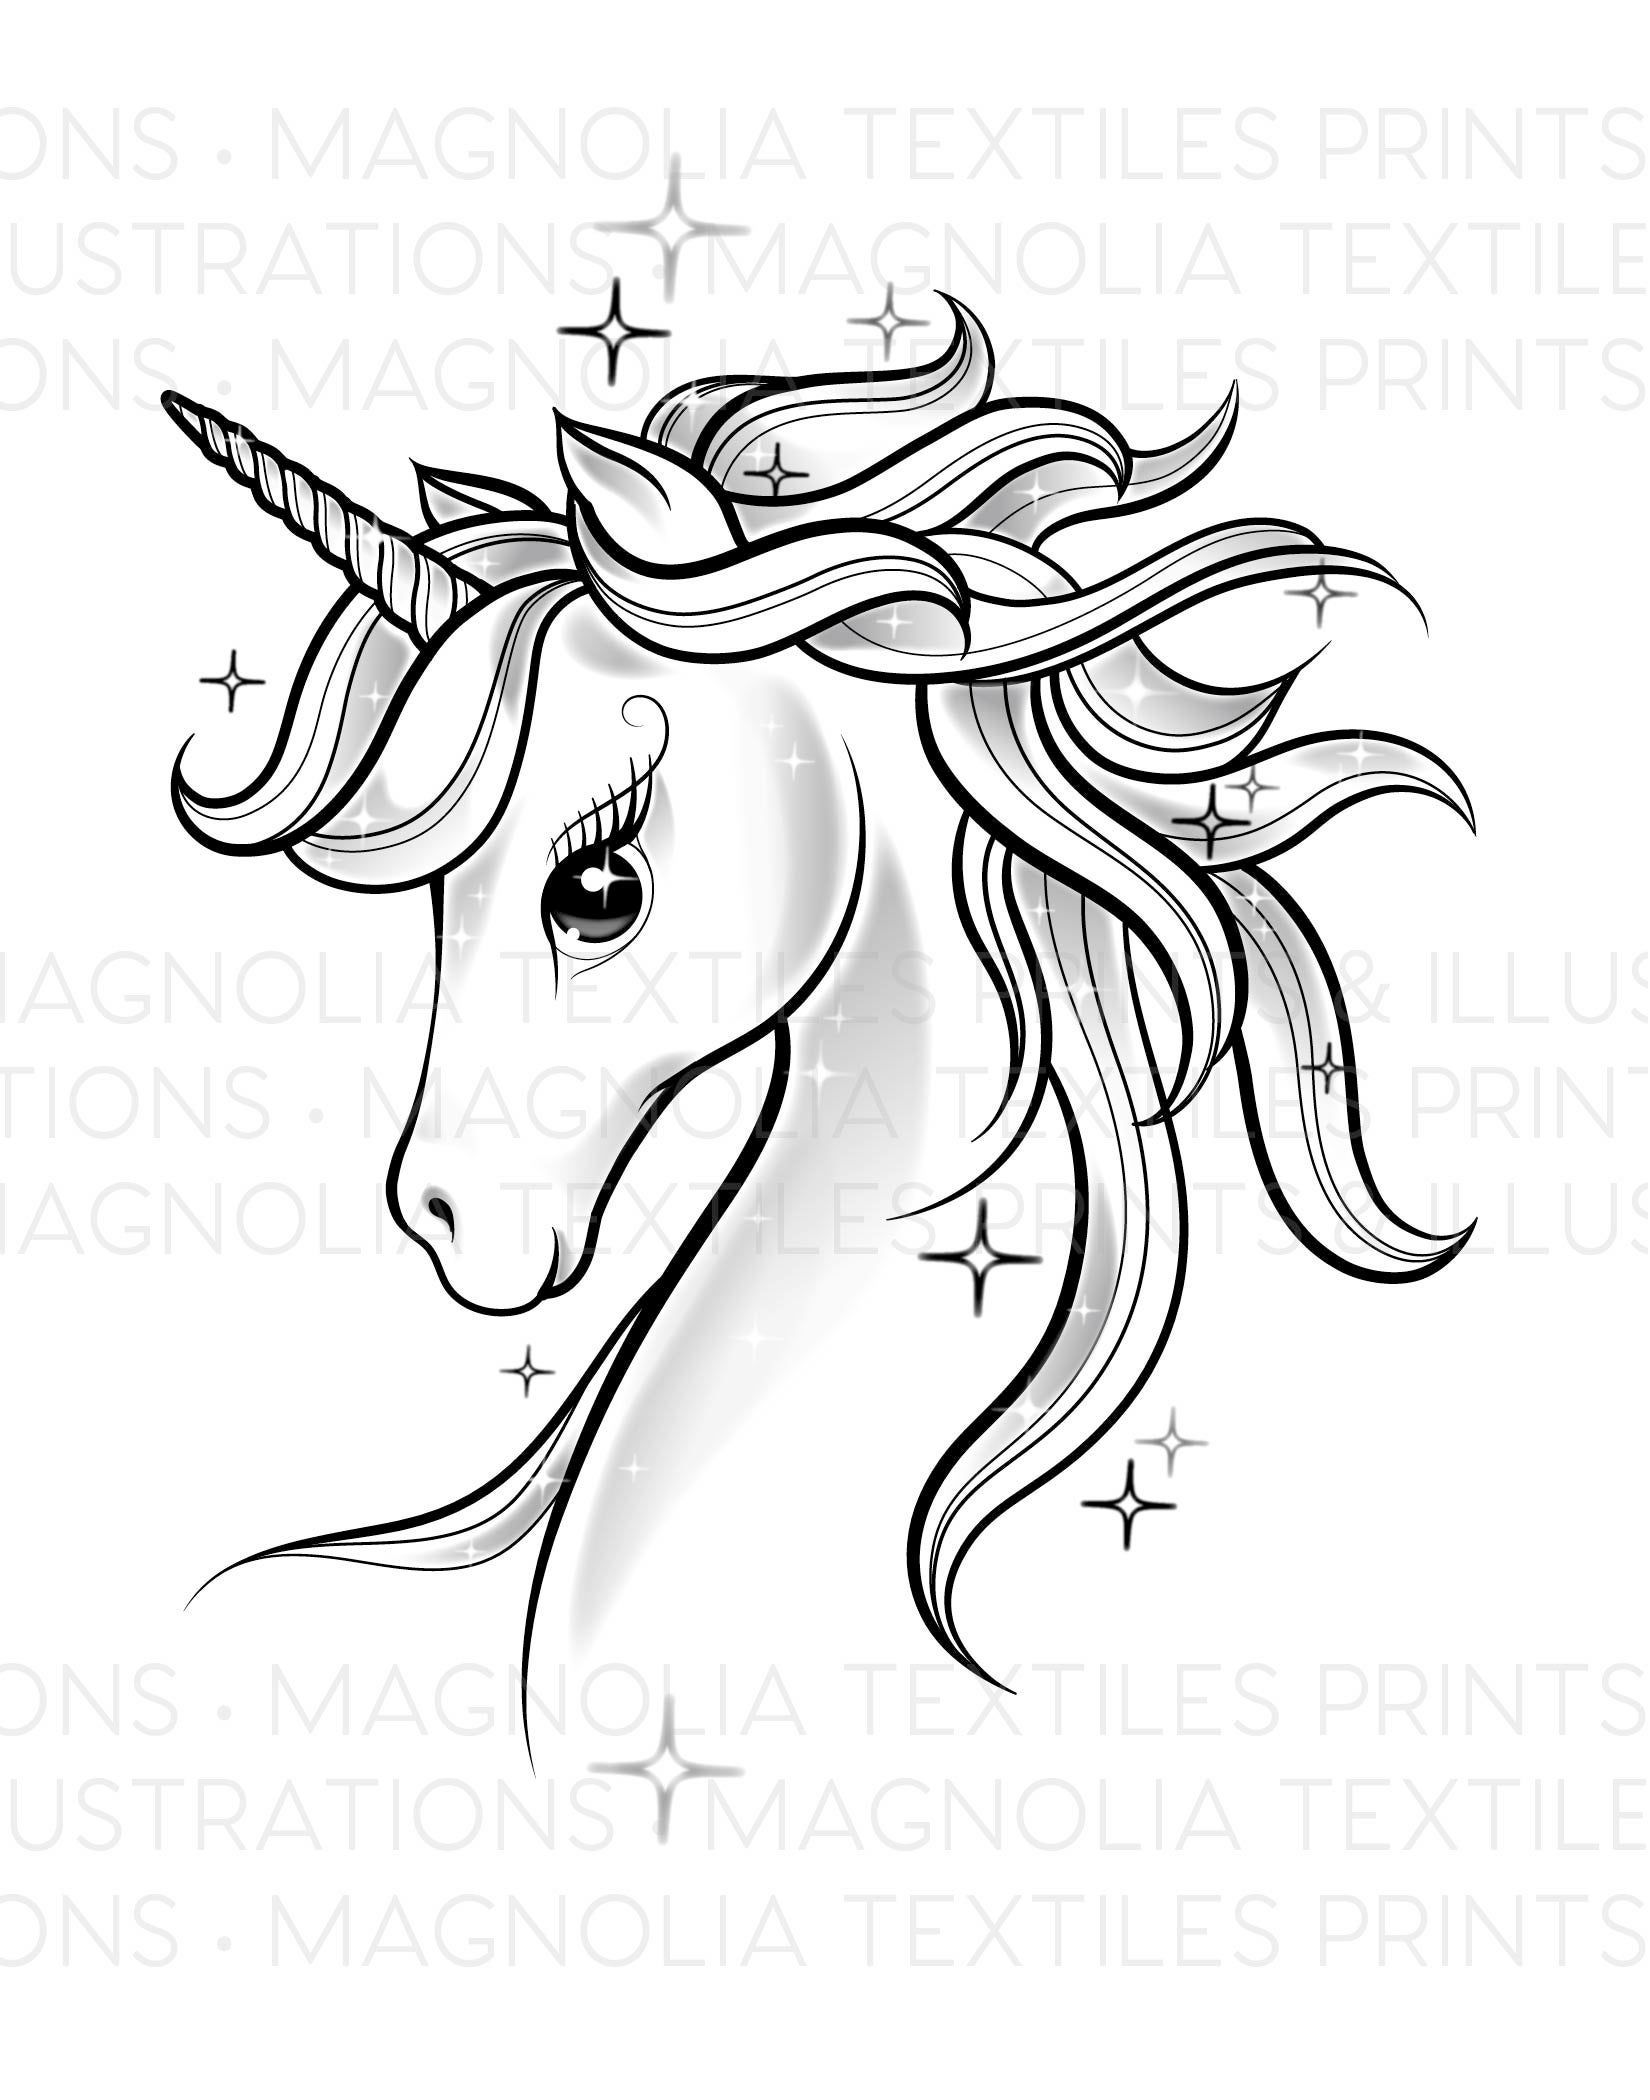 Unicorn Black and White Illustration, Printable Unicorn Digital Download, Unicorn Print, Unicorn Art, Unicorn Gift and Decor, Girls Room - Unicorn art drawing, Unicorn coloring pages, Unicorn illustration, Unicorn art, Unicorn painting, Unicorn drawing - or monitor settings Instant Digital Download JPEG file 3300x4200 included Dimensions 11 x 14  but can be adjusted to your needs PLEASE NOTE  No actual print will be delivered as this item is a DIGITAL DOWNLOAD only Instant Downloads are available immediately after purchase Refunds are not available for instant digital download files  Would you like to PERSONALIZE an item on my shop   I can custom personalize any artwork on my shop  for an additional fee please contact me CUSTOM orders or requests are greatly appreciated and welcome! PLEASE NOTE  This digital artwork print is for PERSONAL USE only Distributing or selling the file in any format is prohibited by law Sharing the digital file by email or any other method of digital transfer is forbidden Not to share, sell or distribute, NOT FOR ANY TYPE OF COMMERCIAL use Thanks for visiting! If there are any questions or concerns please do not hesitate to contact me ))